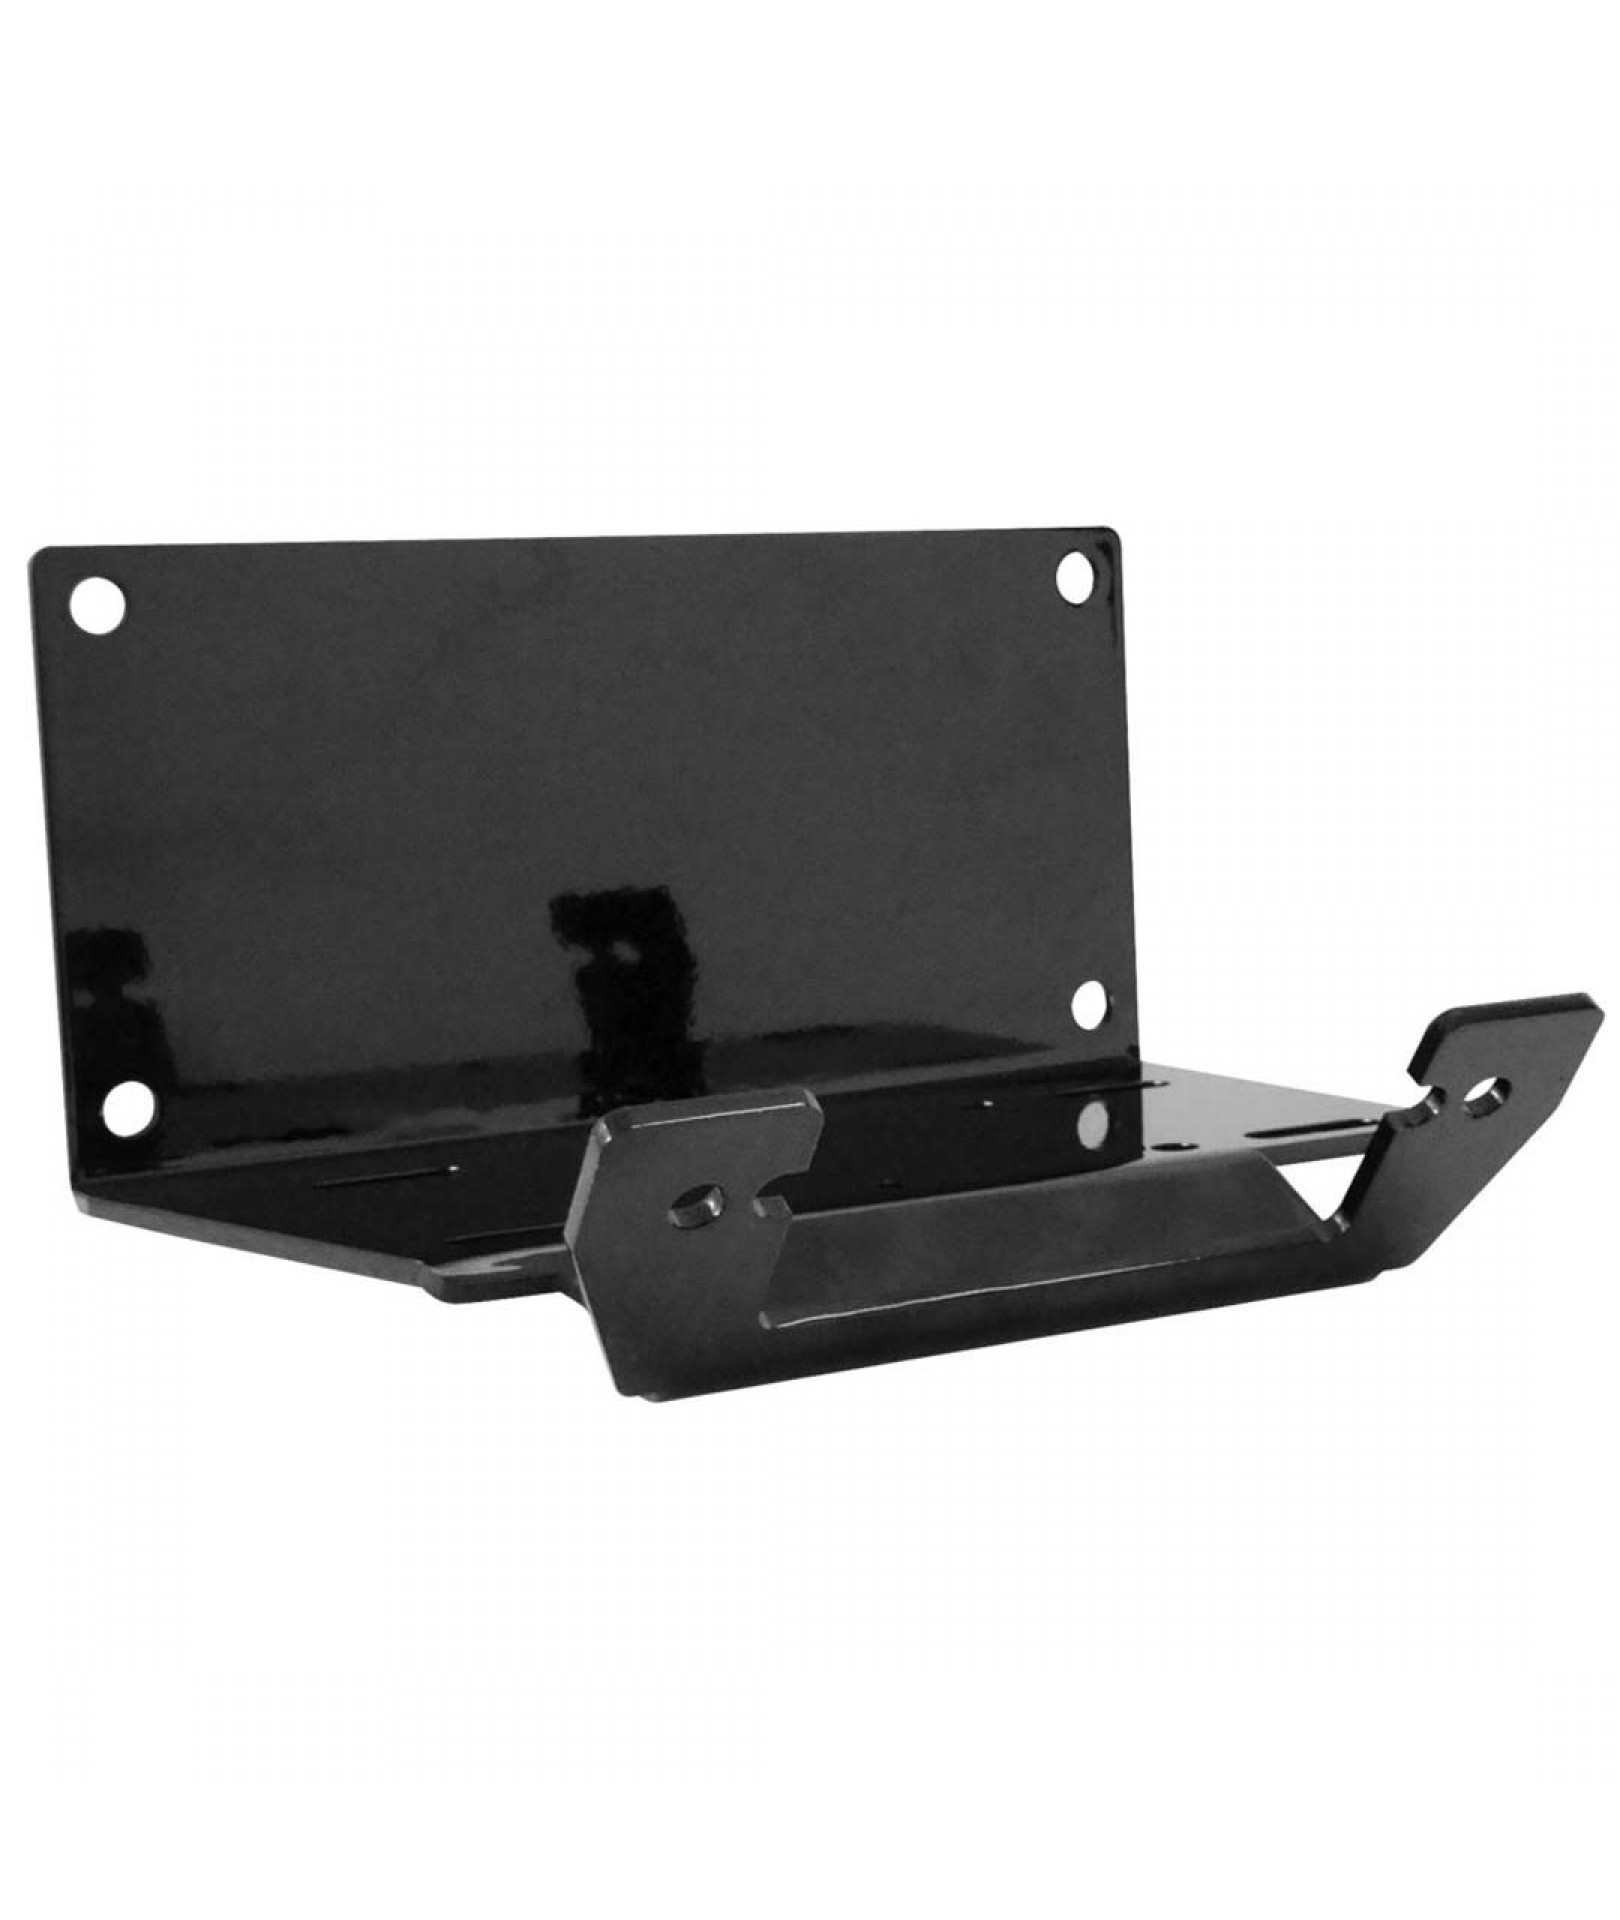 hight resolution of atv winch mount